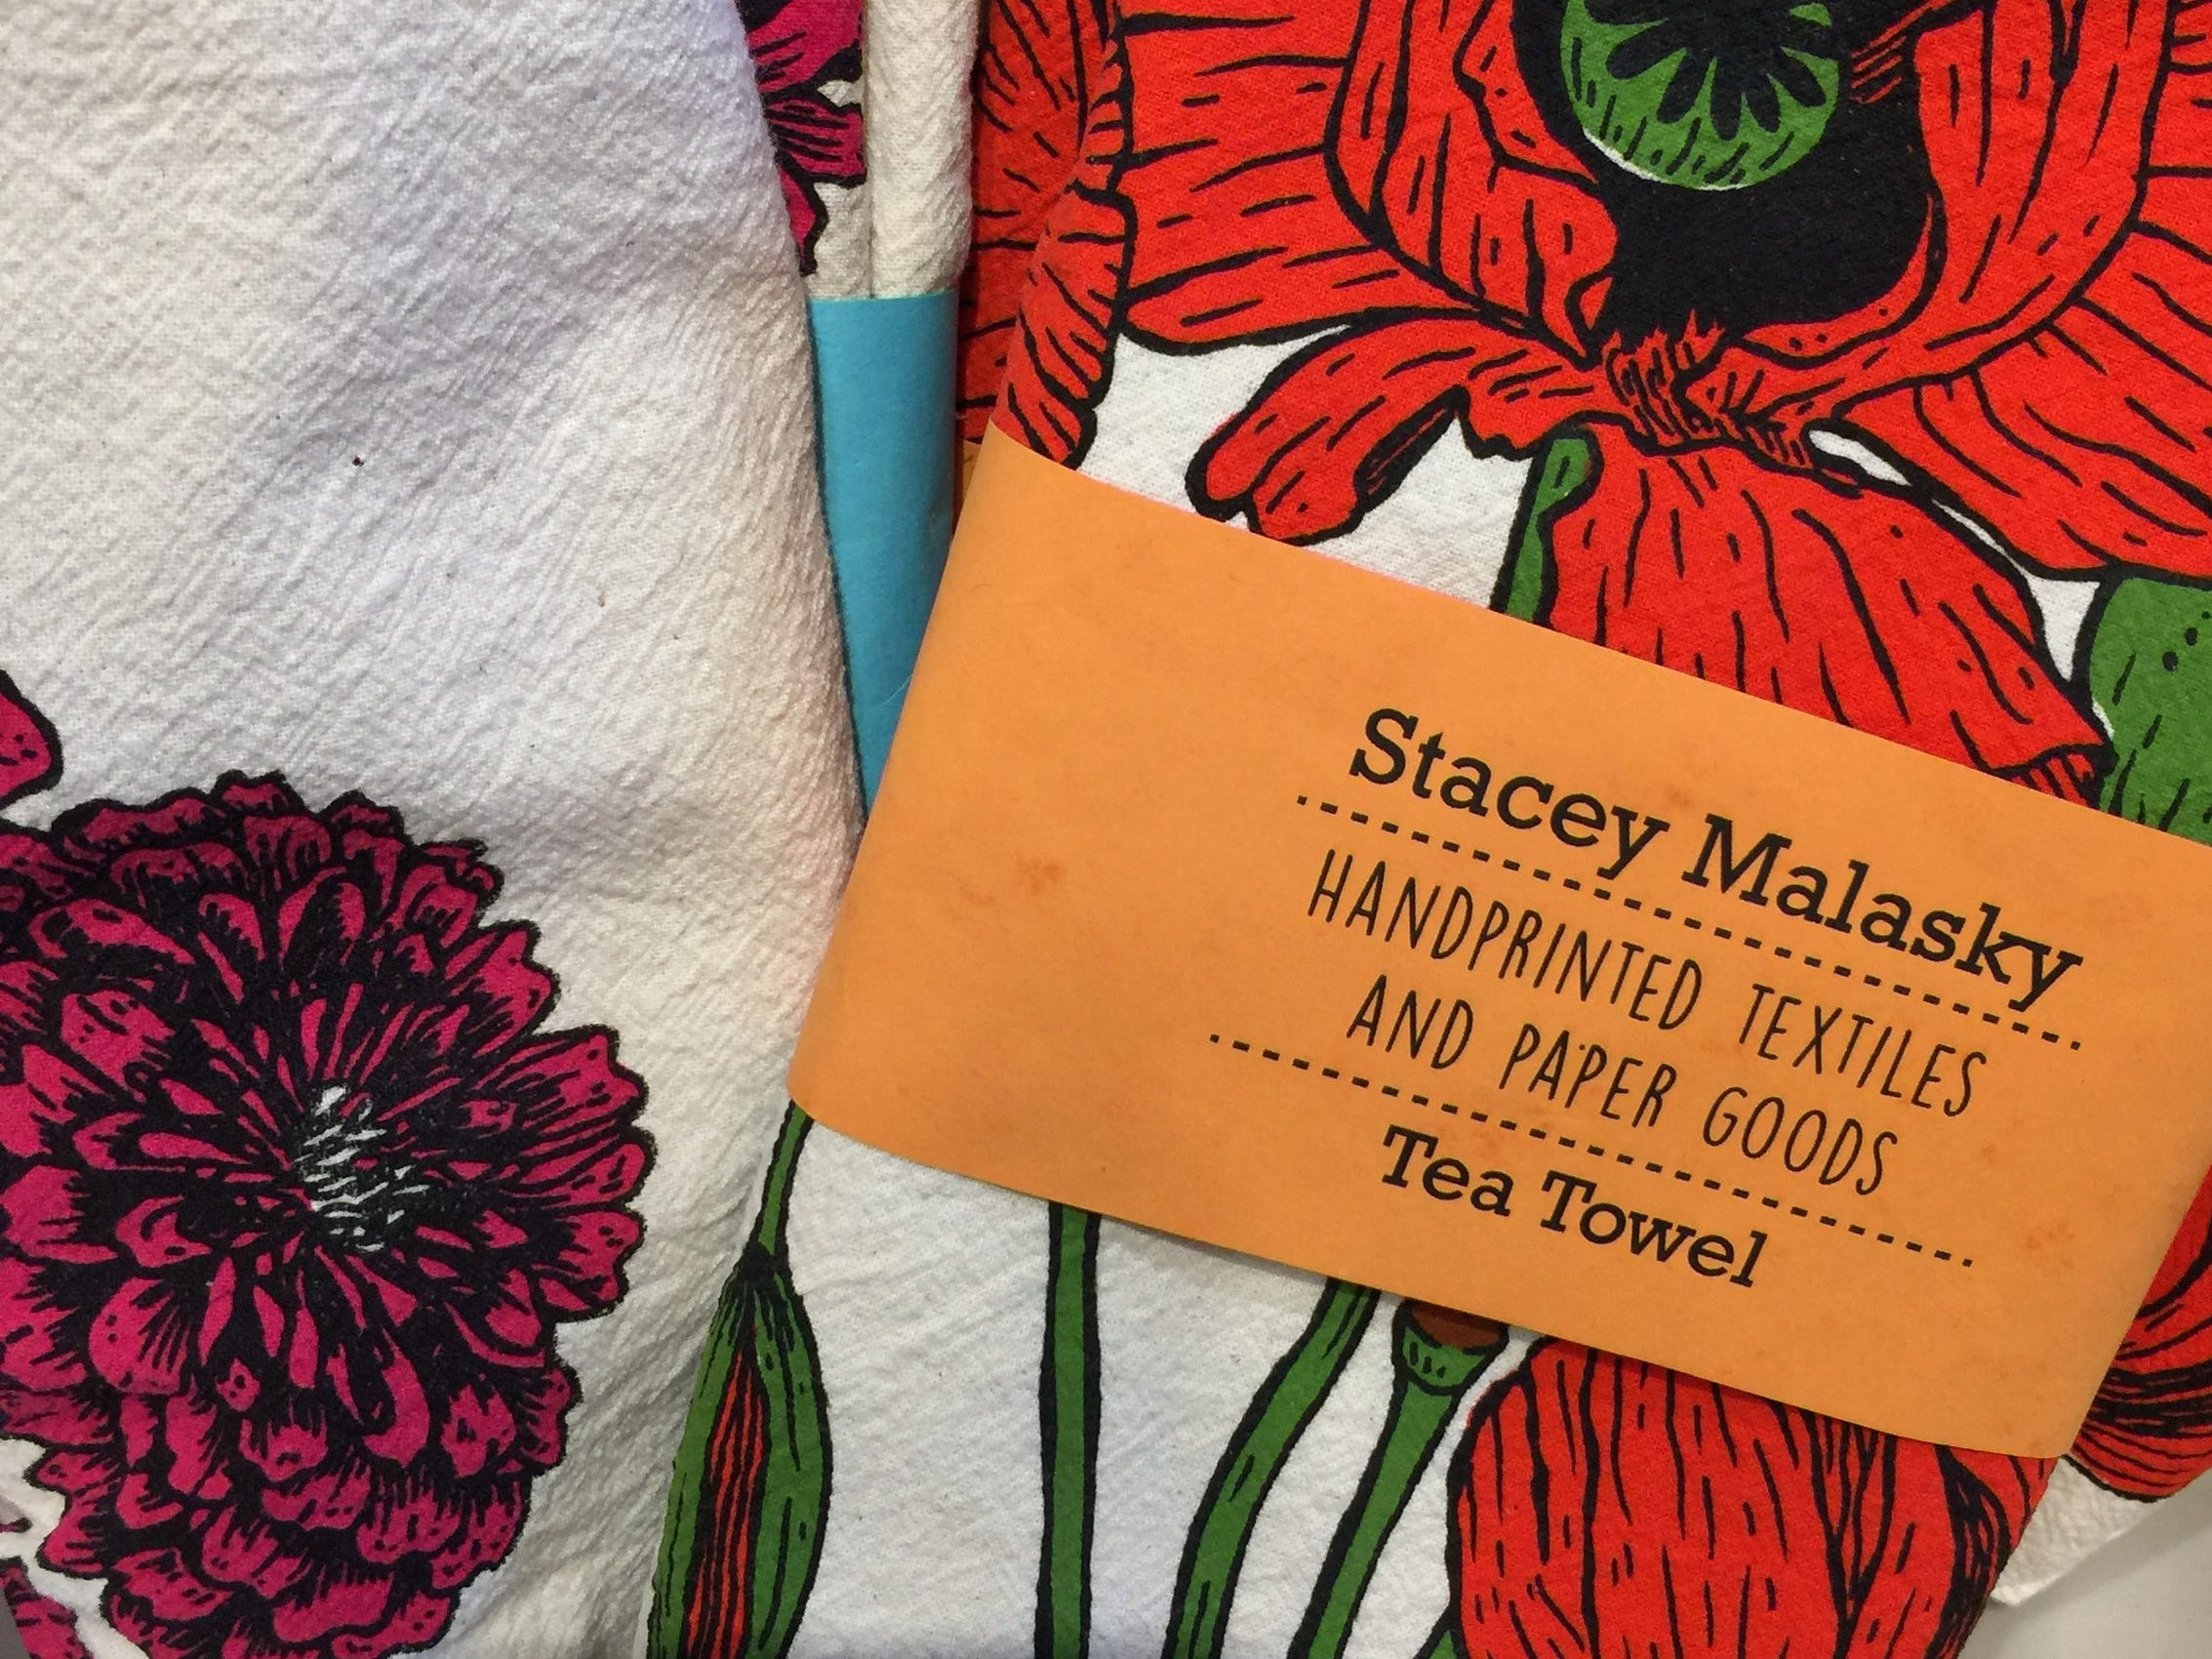 Bright, bold flowers bring these handprinted Stacy Malasky tea towels to life. They're available at Post in Detroit.